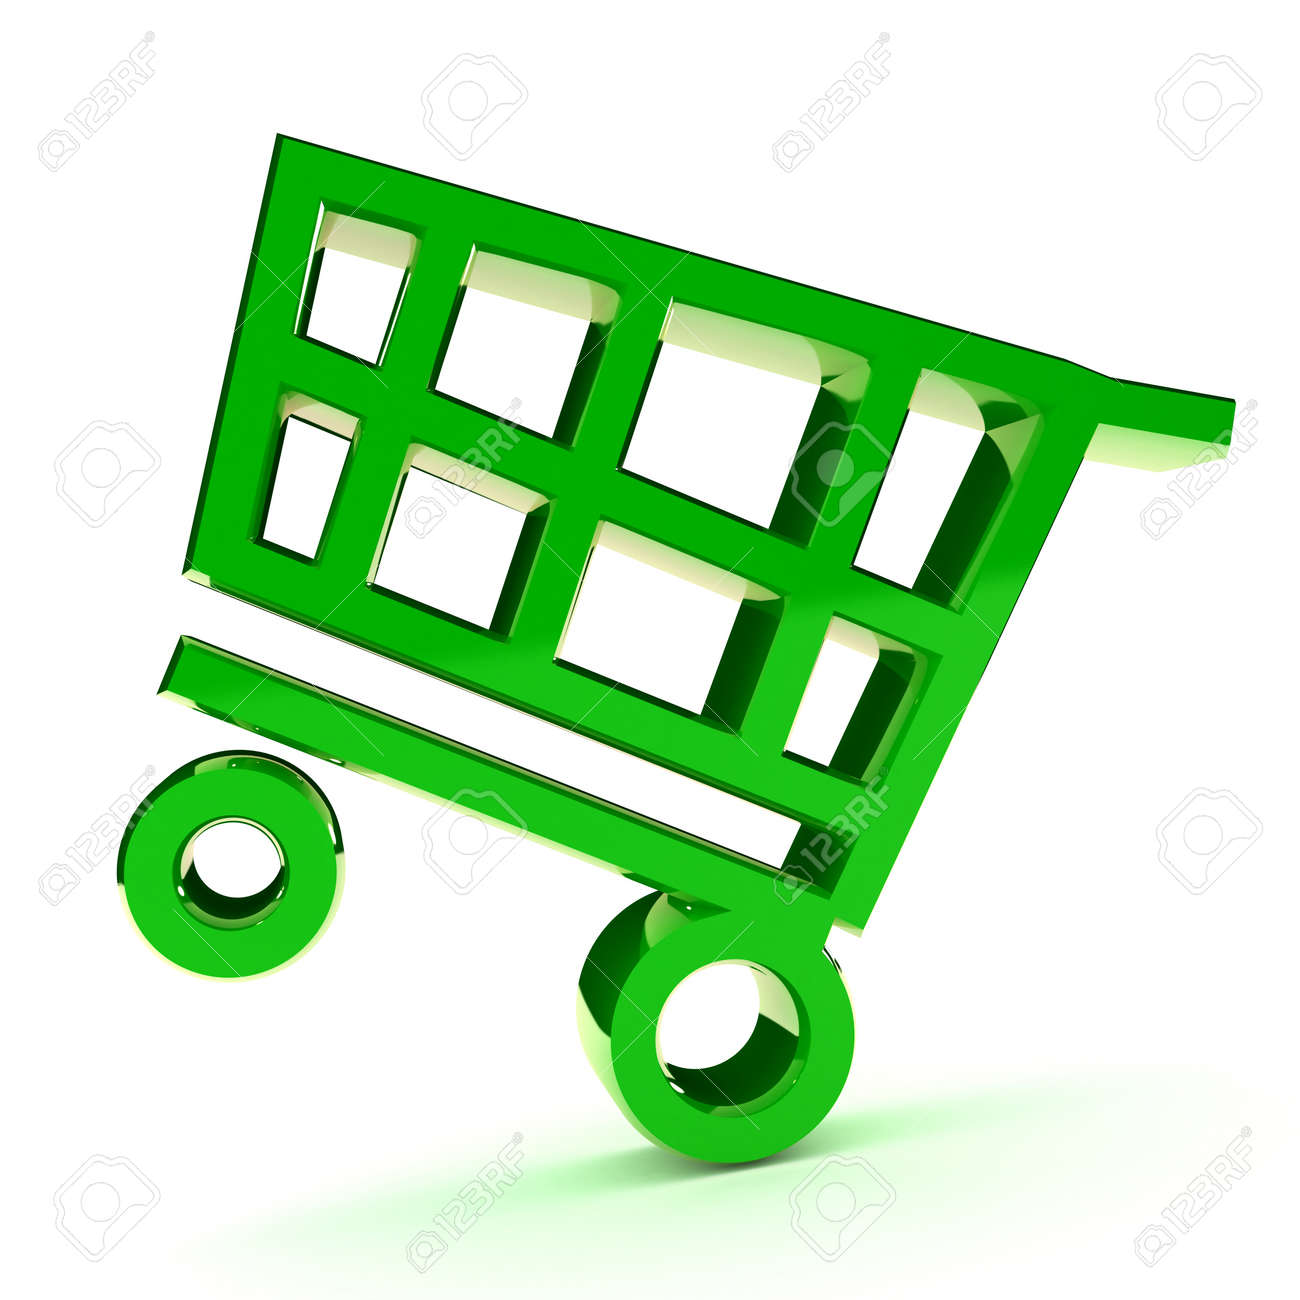 A Colourful 3d Rendered Shopping Cart Illlustration Stock Photo - 8994718